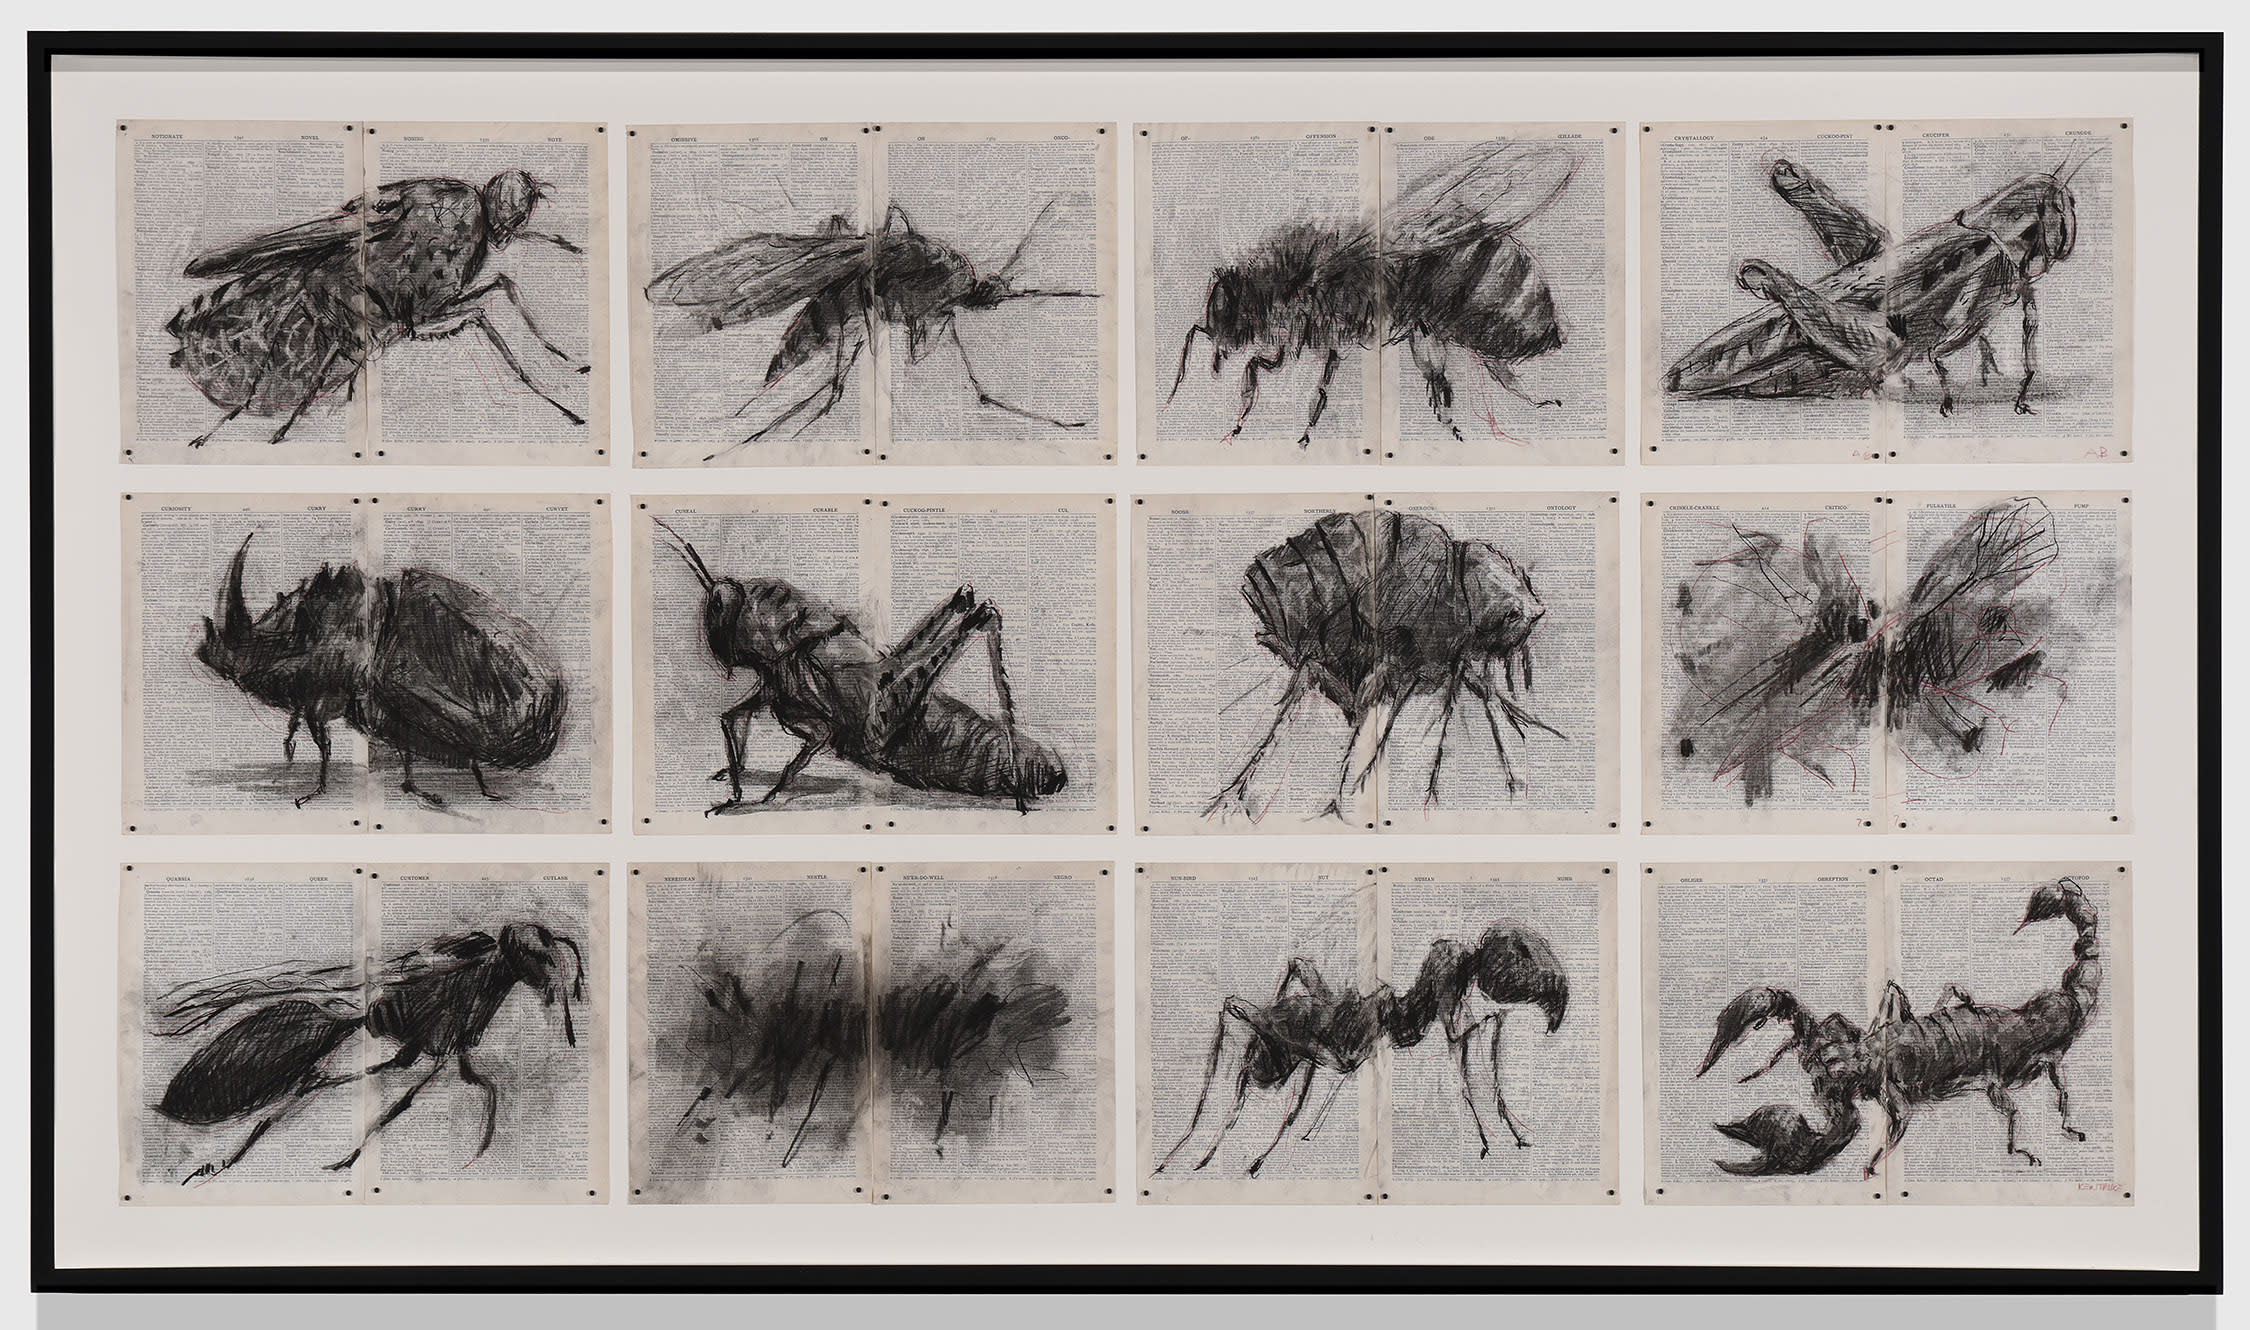 12 insects drawn by William Kentridge